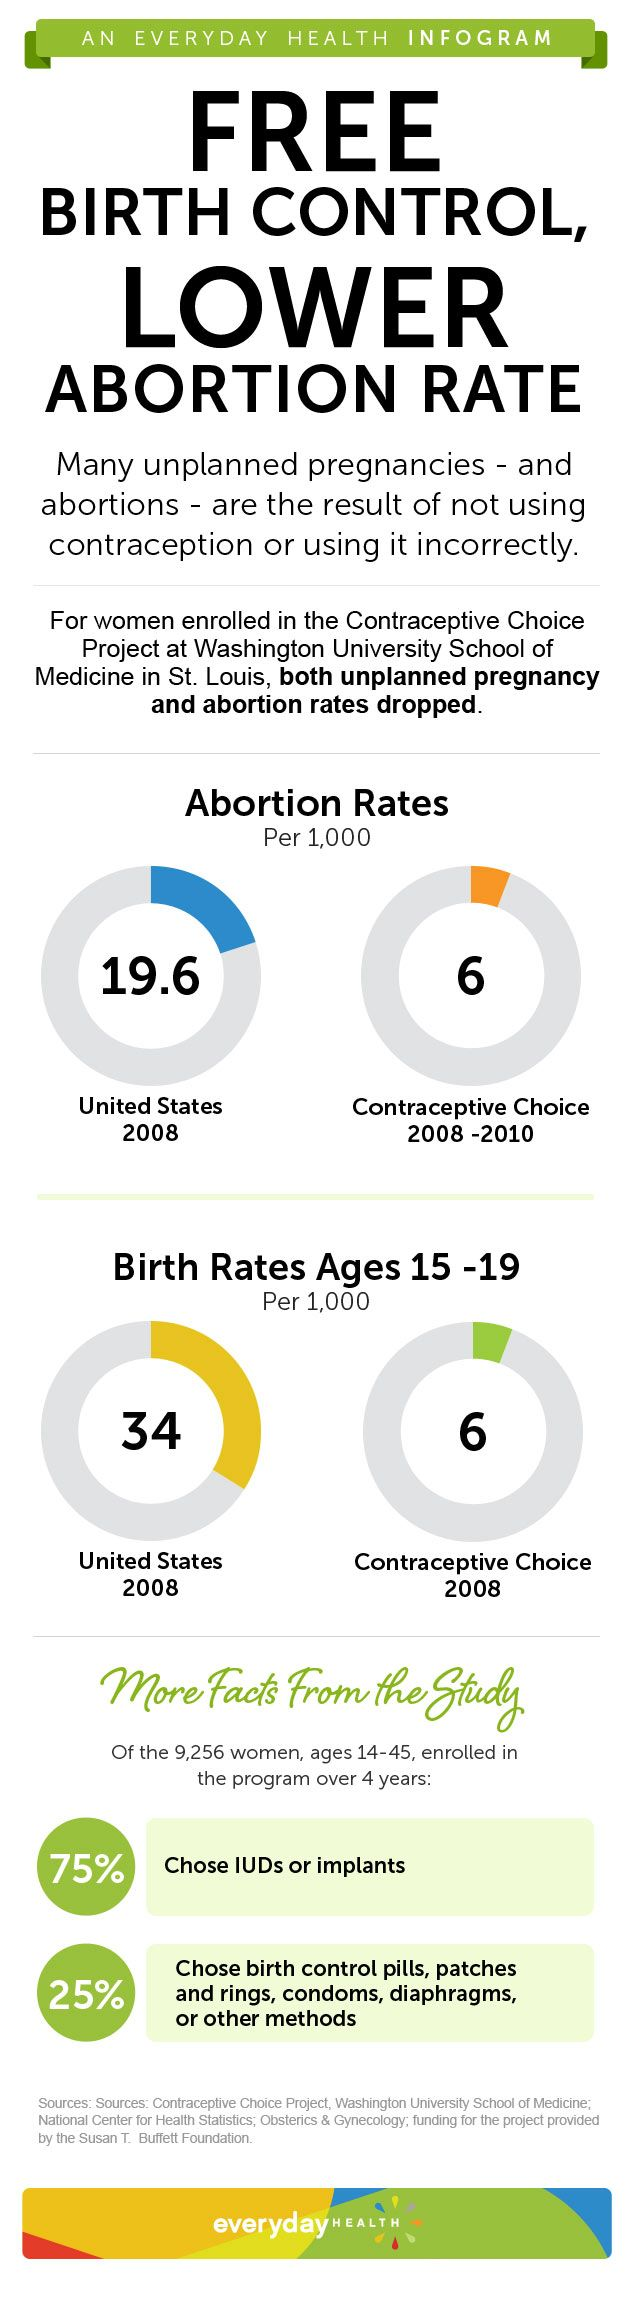 The four-year Contraceptive Choice Project in St. Louis (funded by the Susan T. Buffett Foundation) offered thousands of women free IUDs, implants, and other forms of birth control.  The result: a substantial drop in the abortion rate compared to the nati